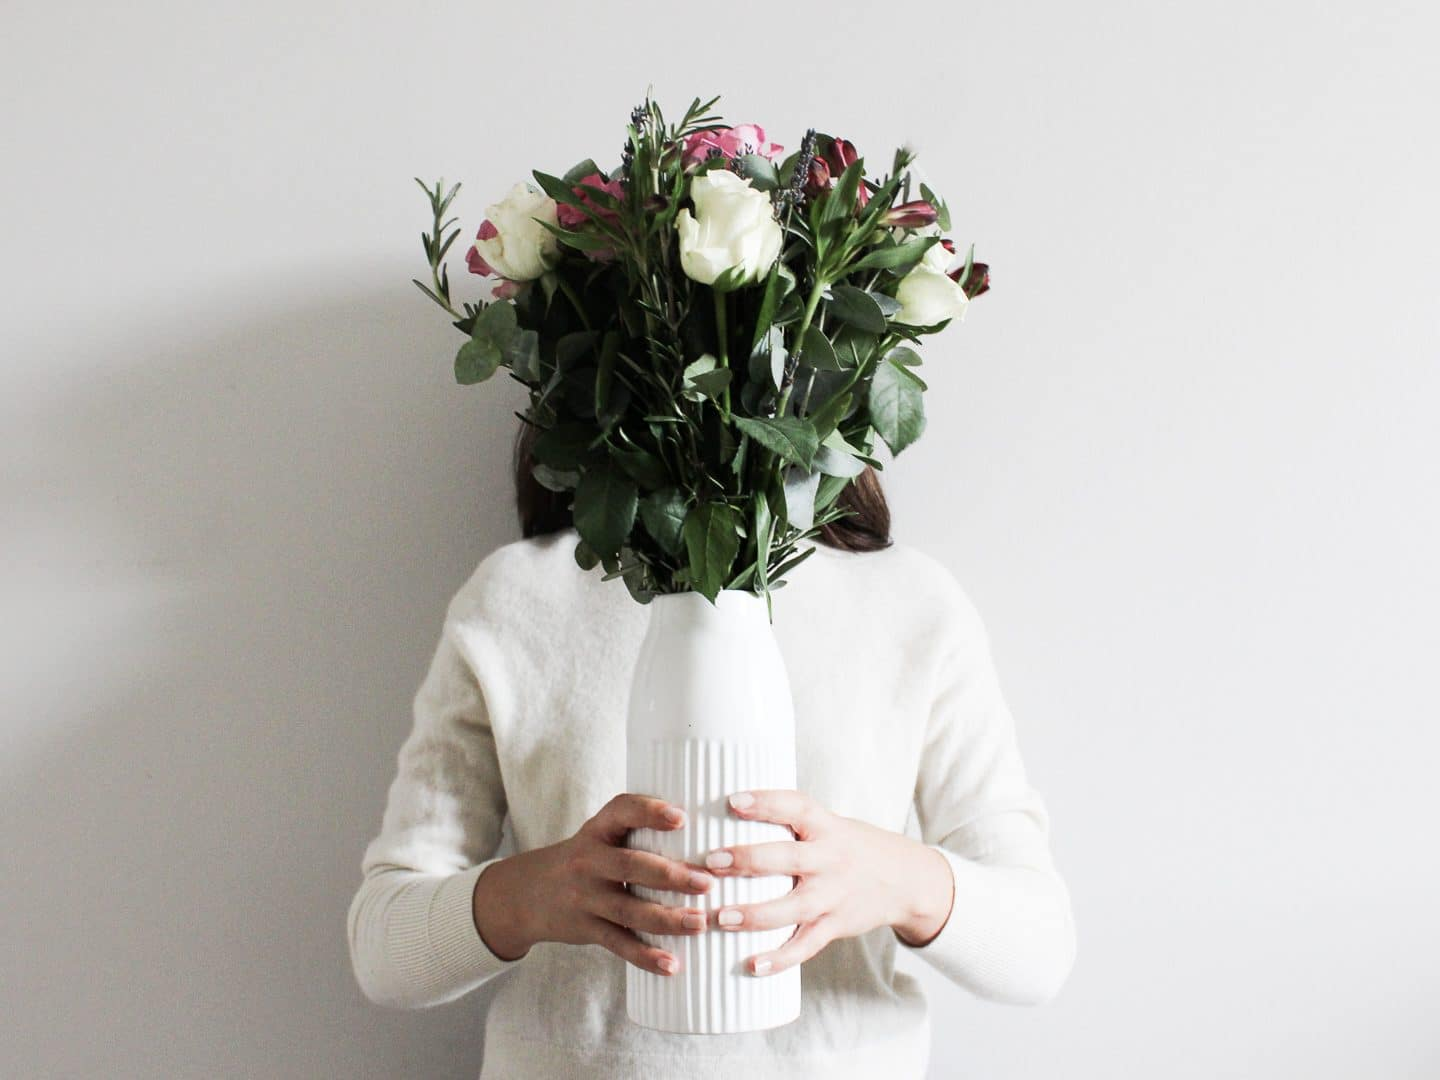 Besma holds a bouquet in front of her face